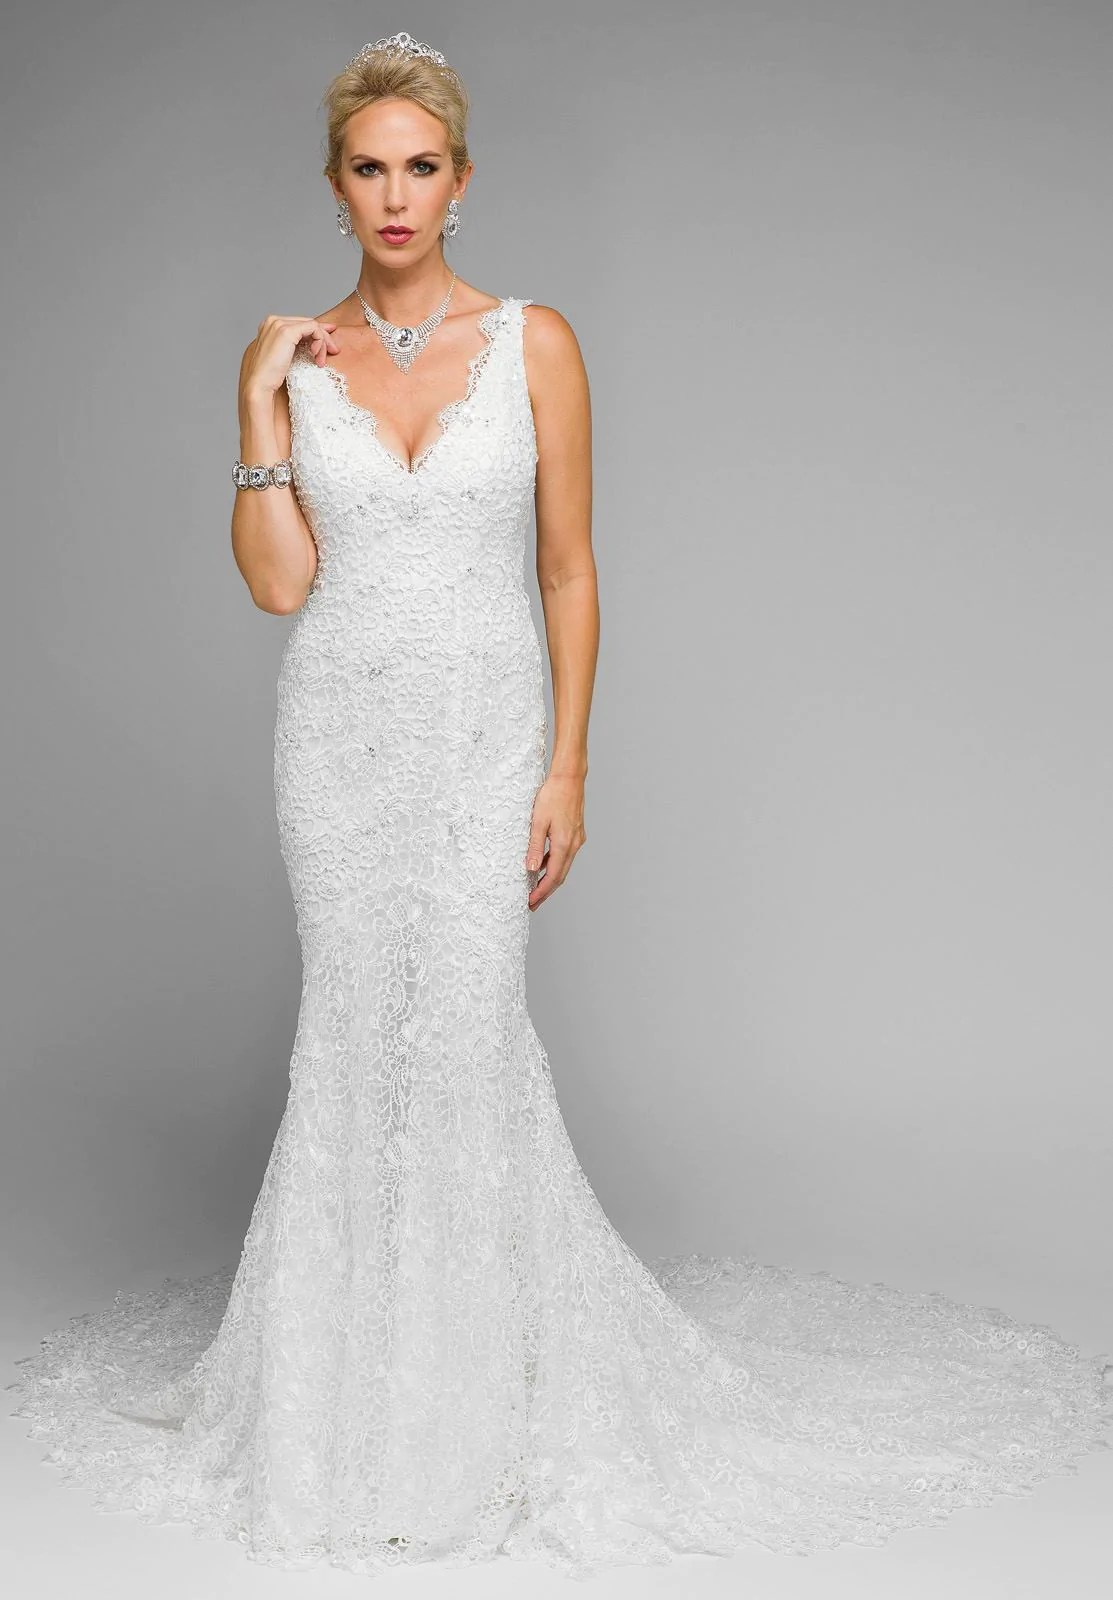 Juliet 341 Plunging Neck Fitted Mermaid Style Lace Wedding Dress  DiscountDressShop